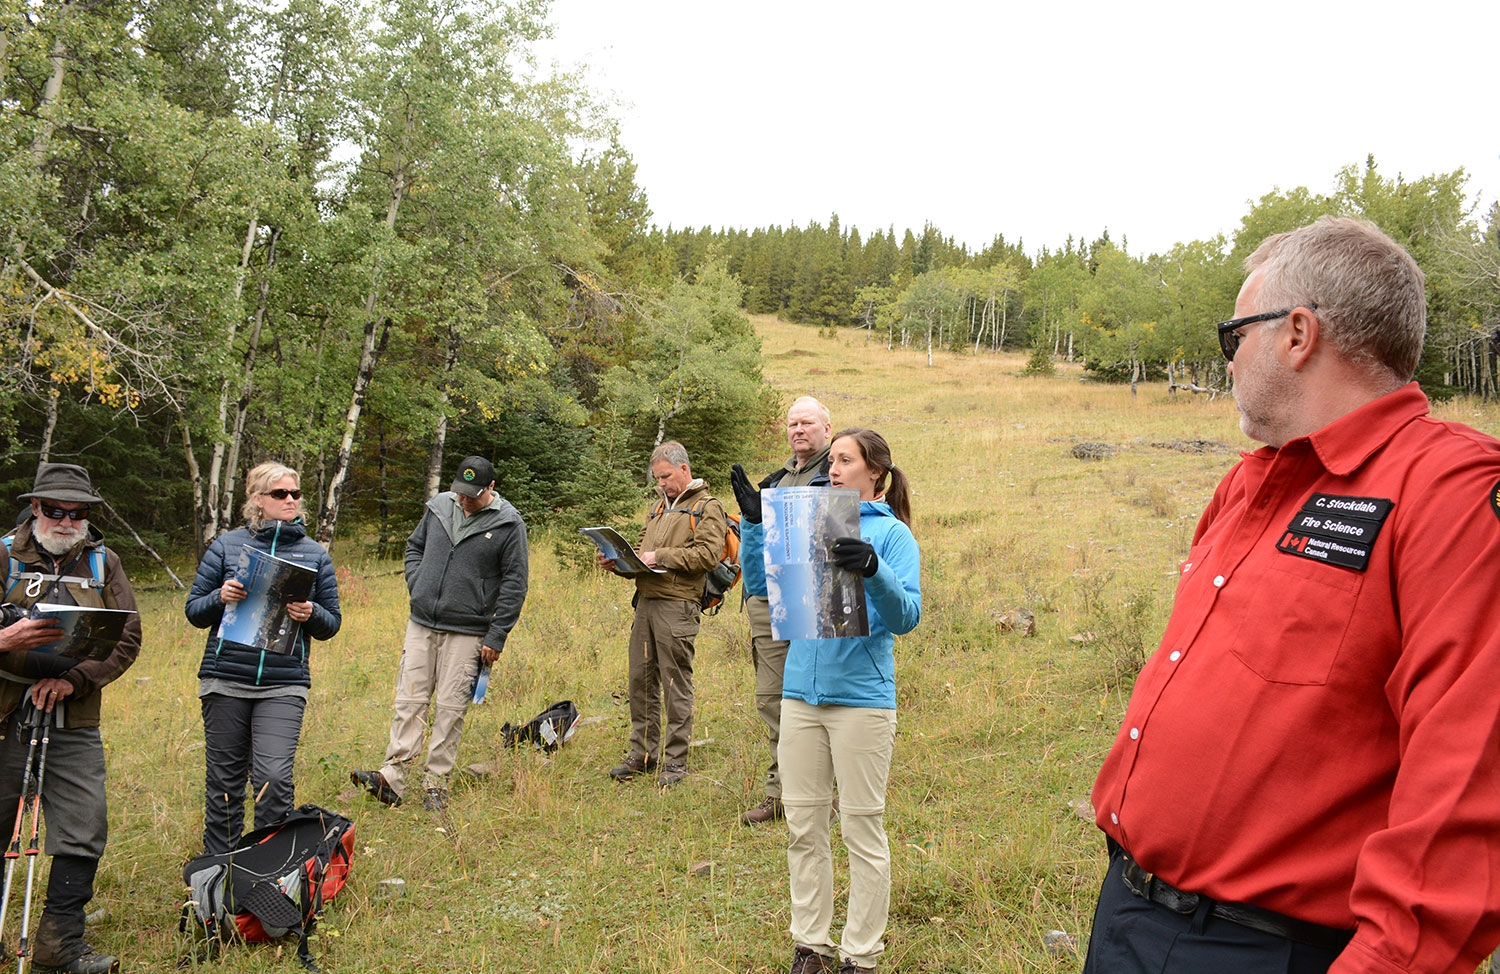 Julie Fortin (centre) and Chris Stockdale (right) present to the group. Photo by Cameron Naficy.